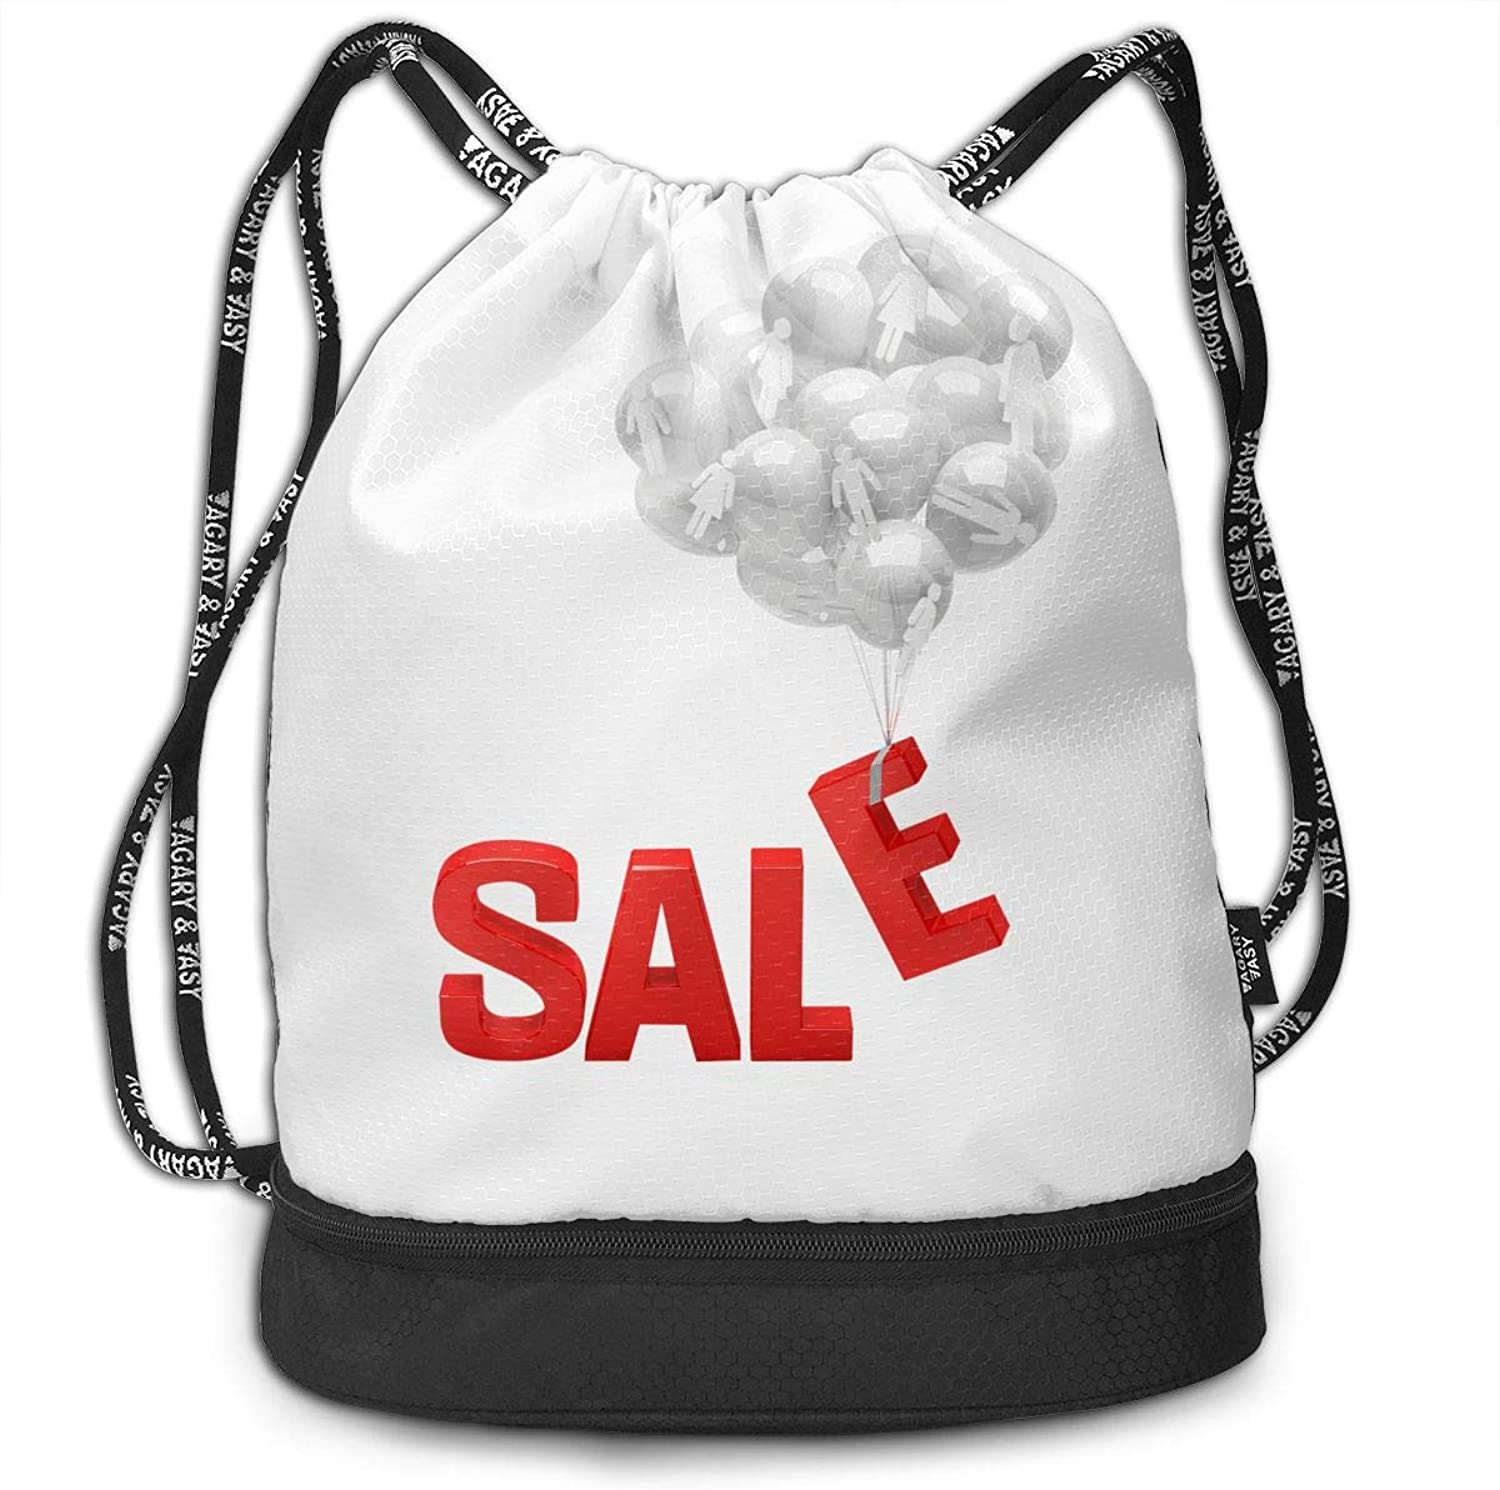 Gymsack Sale Balloon Print Drawstring Bags  Simple Gym Shoulder Bags